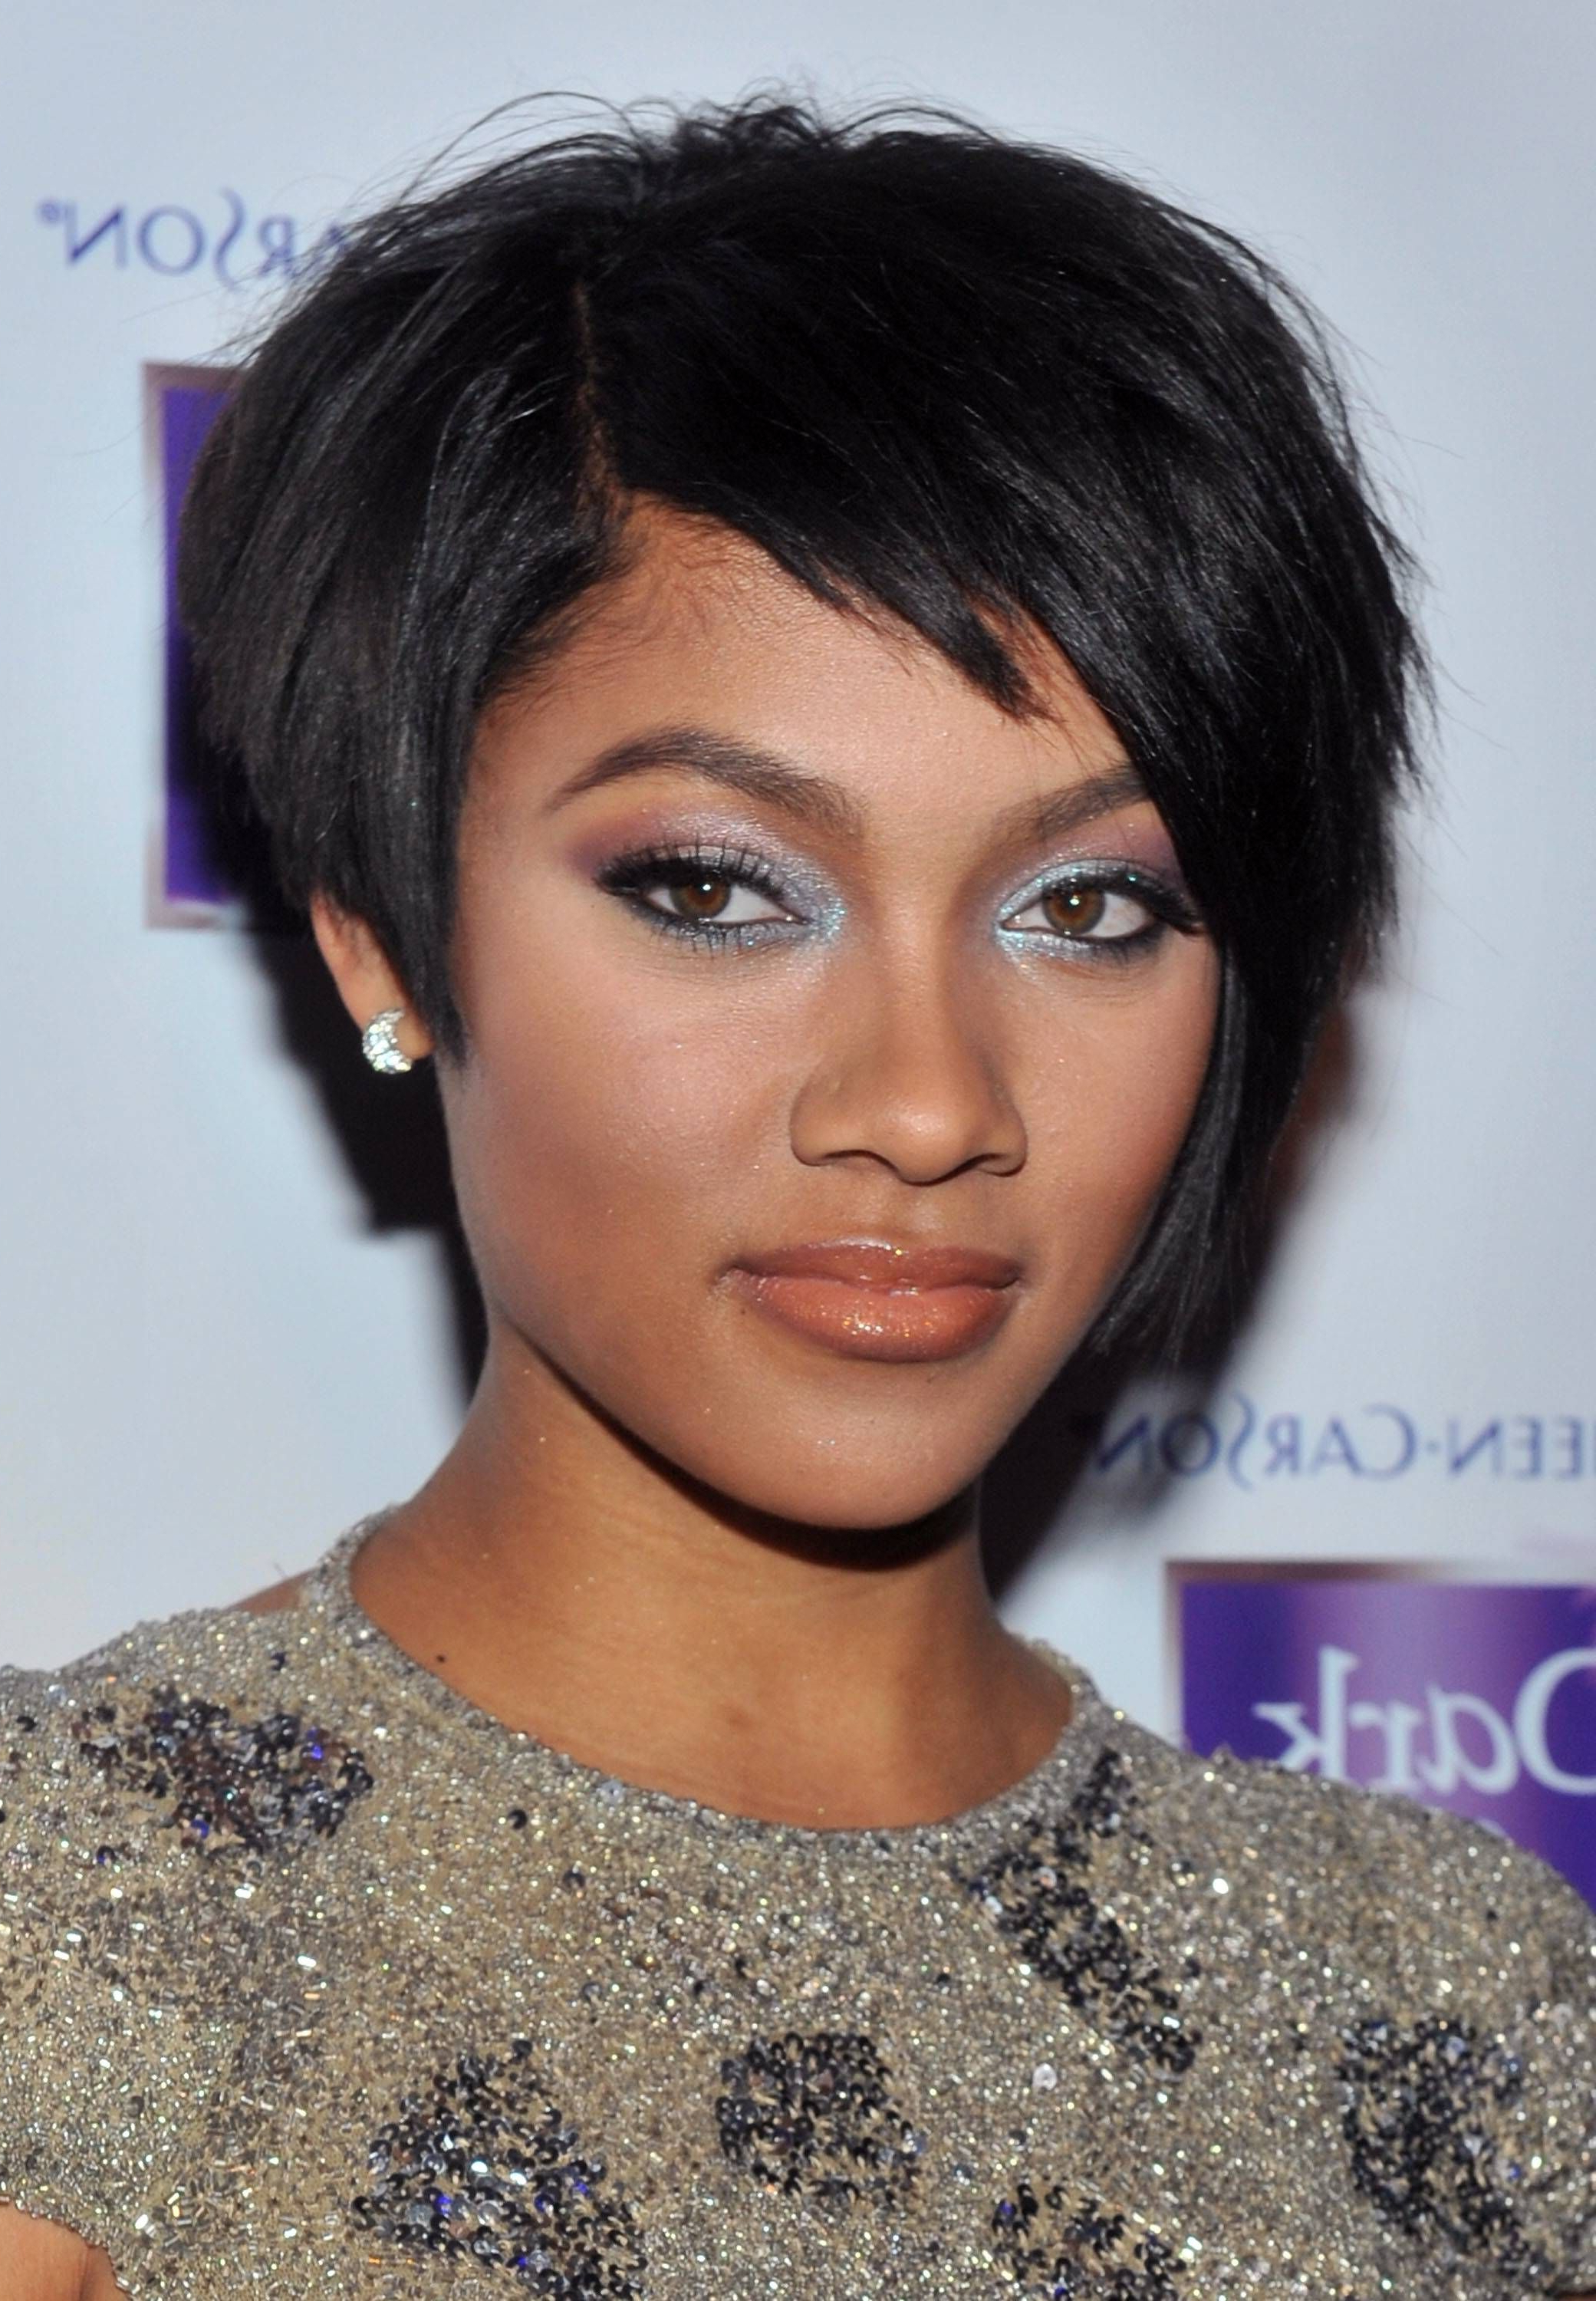 Short Punk Haircuts For Women With Round Faces – Google Search | My With Regard To Short Haircuts For Black Women With Round Faces (View 10 of 25)